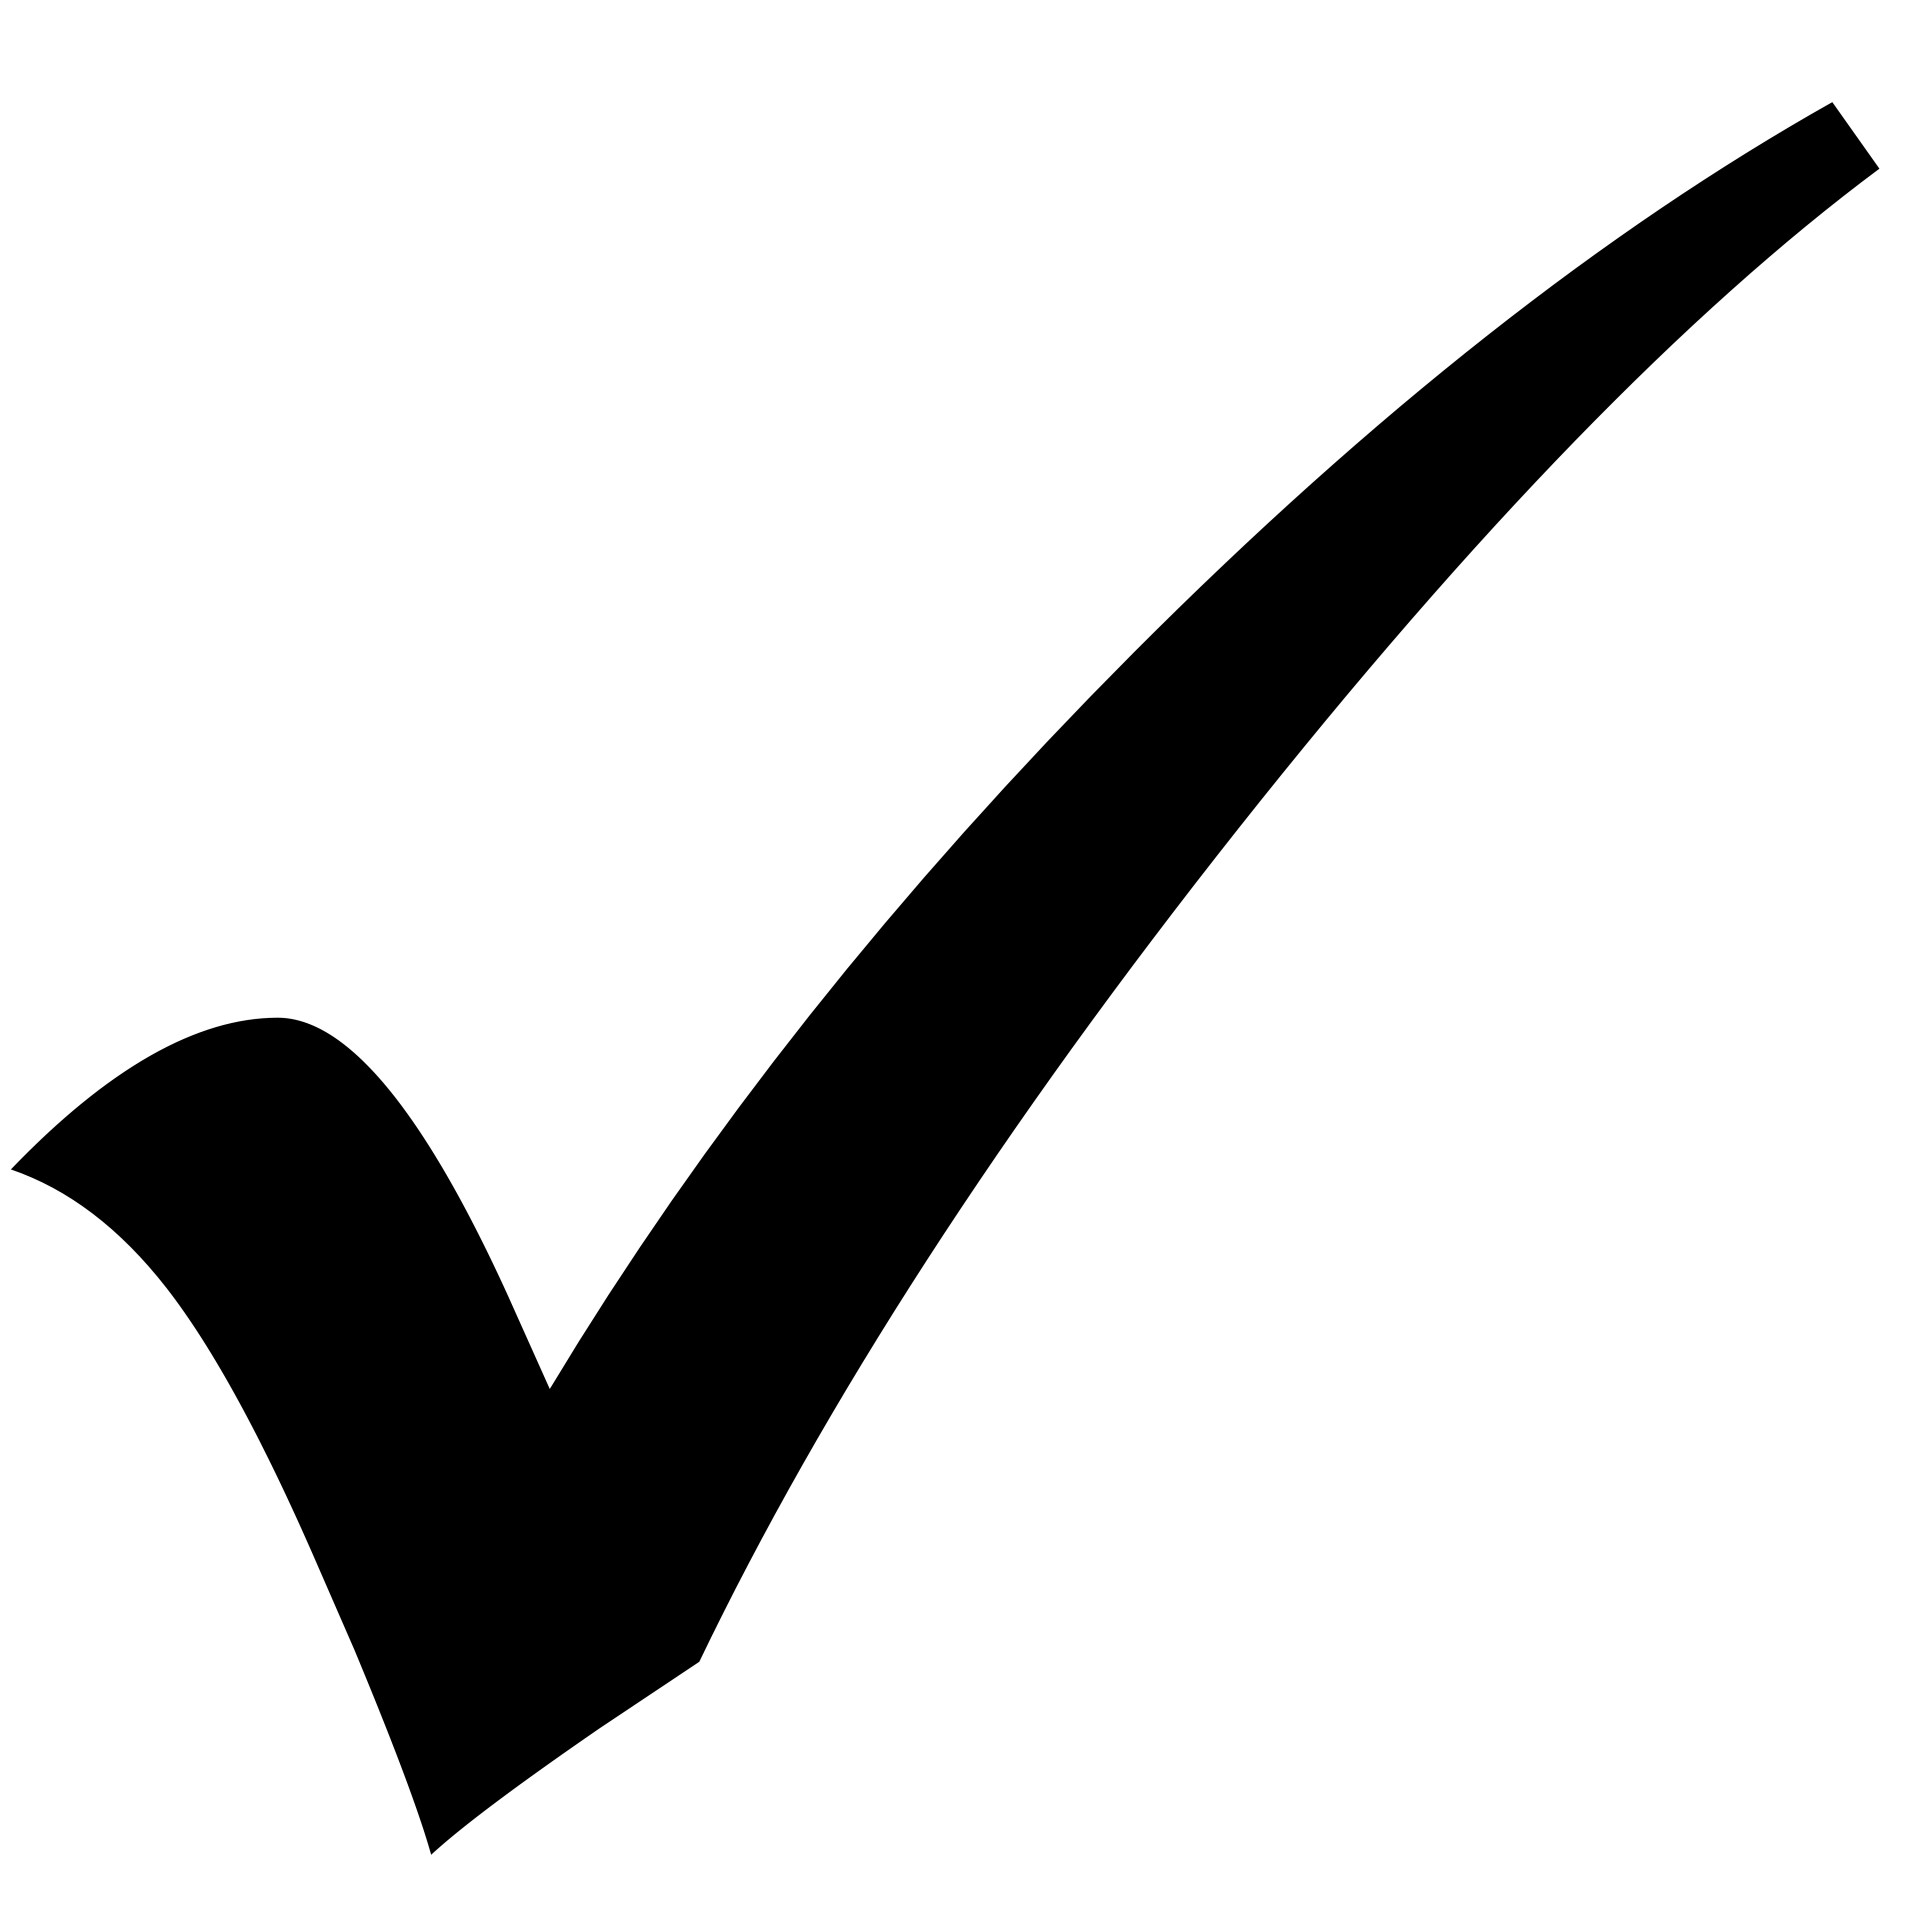 Check Mark Icon Free Stock Photo - Public Domain Pictures on ✔  id=86237